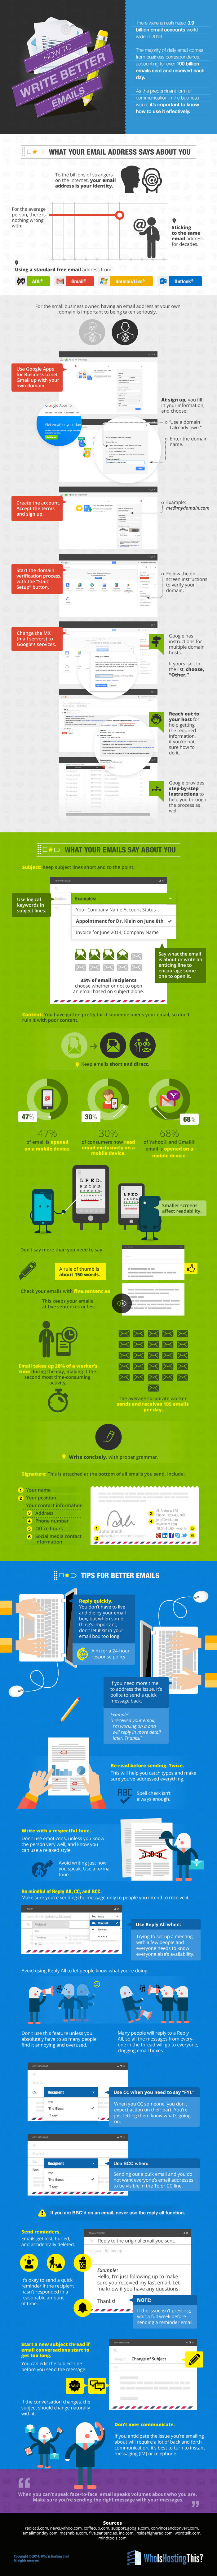 A Beginner's Guide to Writing Perfect Emails #Infographic #marketing